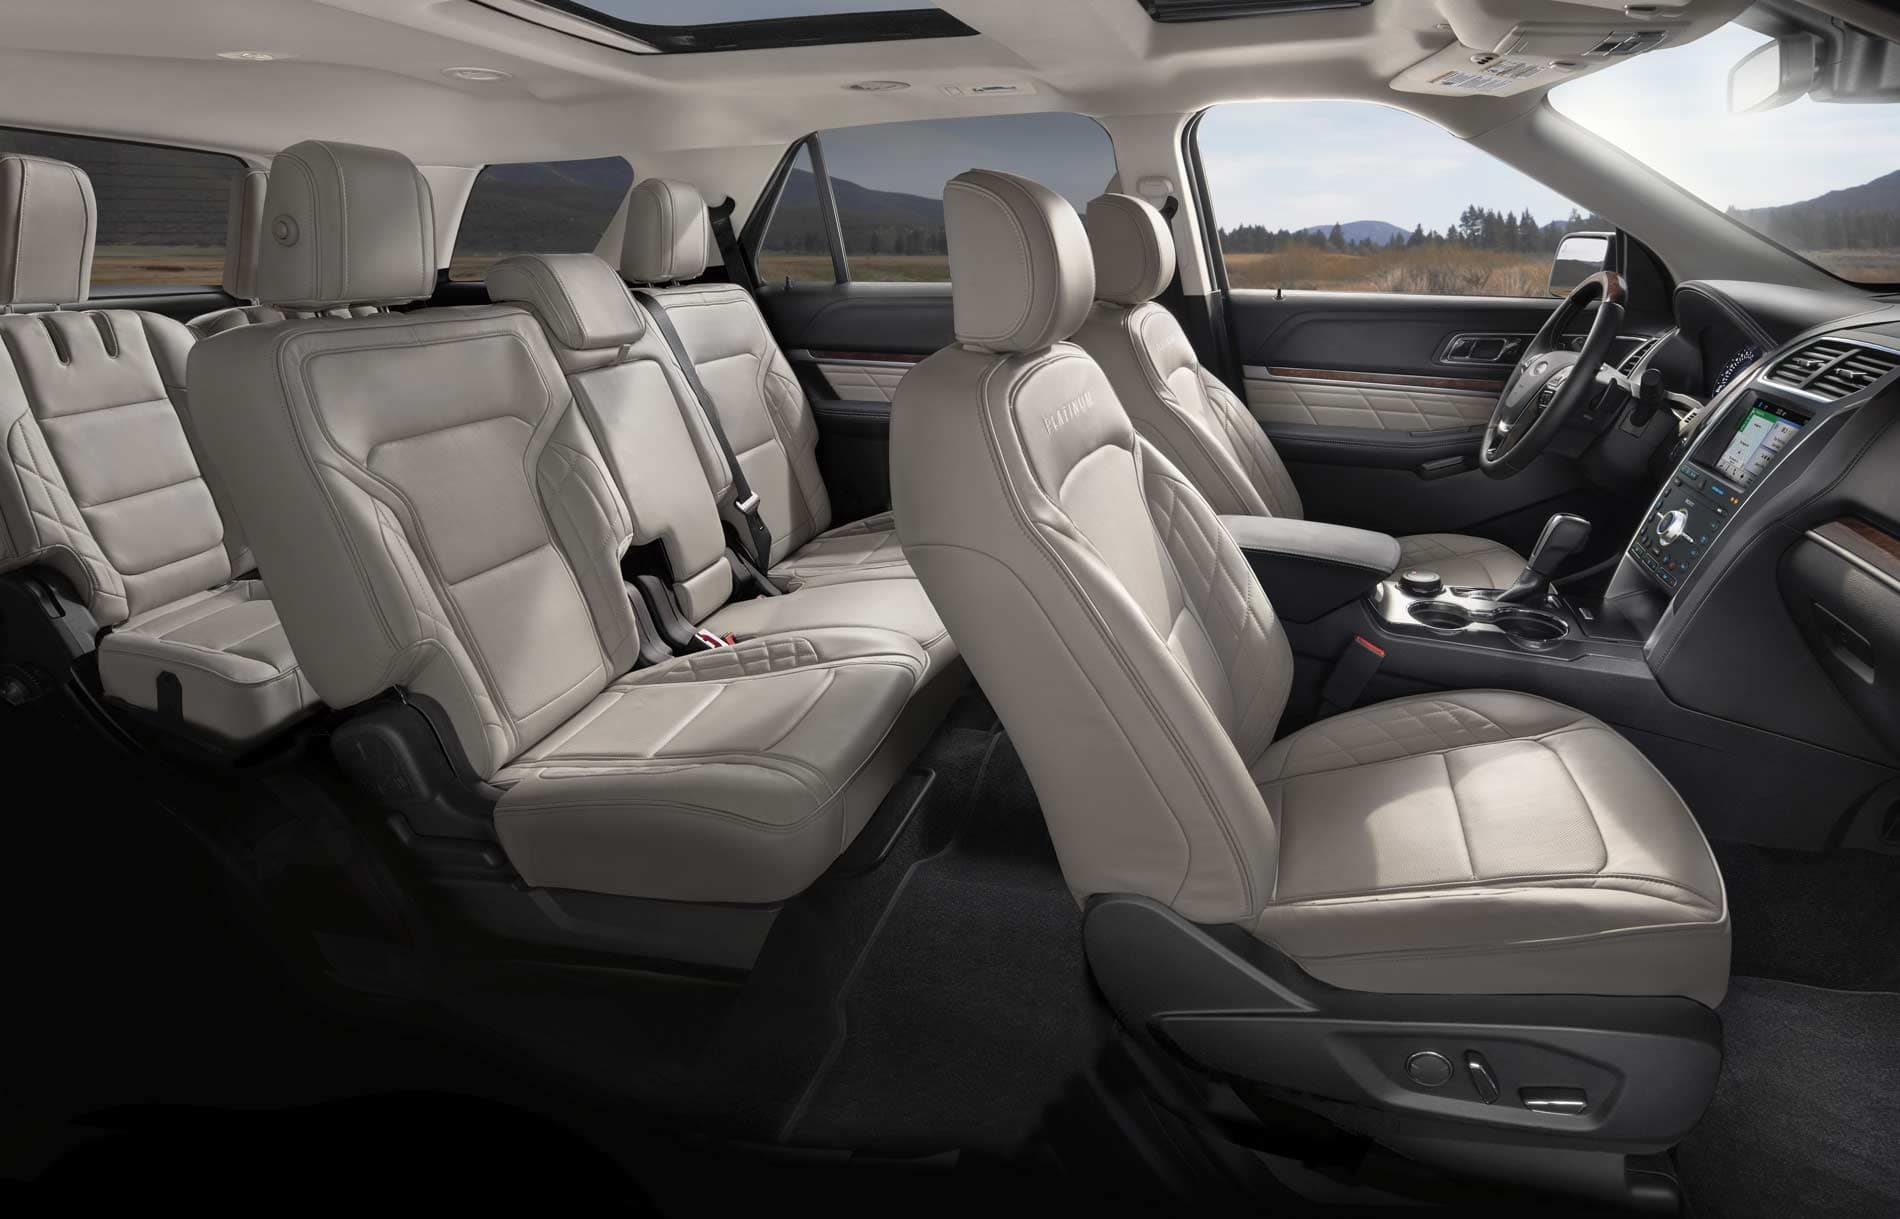 Terrific 2019 Ford Explorer Vs 2018 Expedition Three Row Titans Dailytribune Chair Design For Home Dailytribuneorg